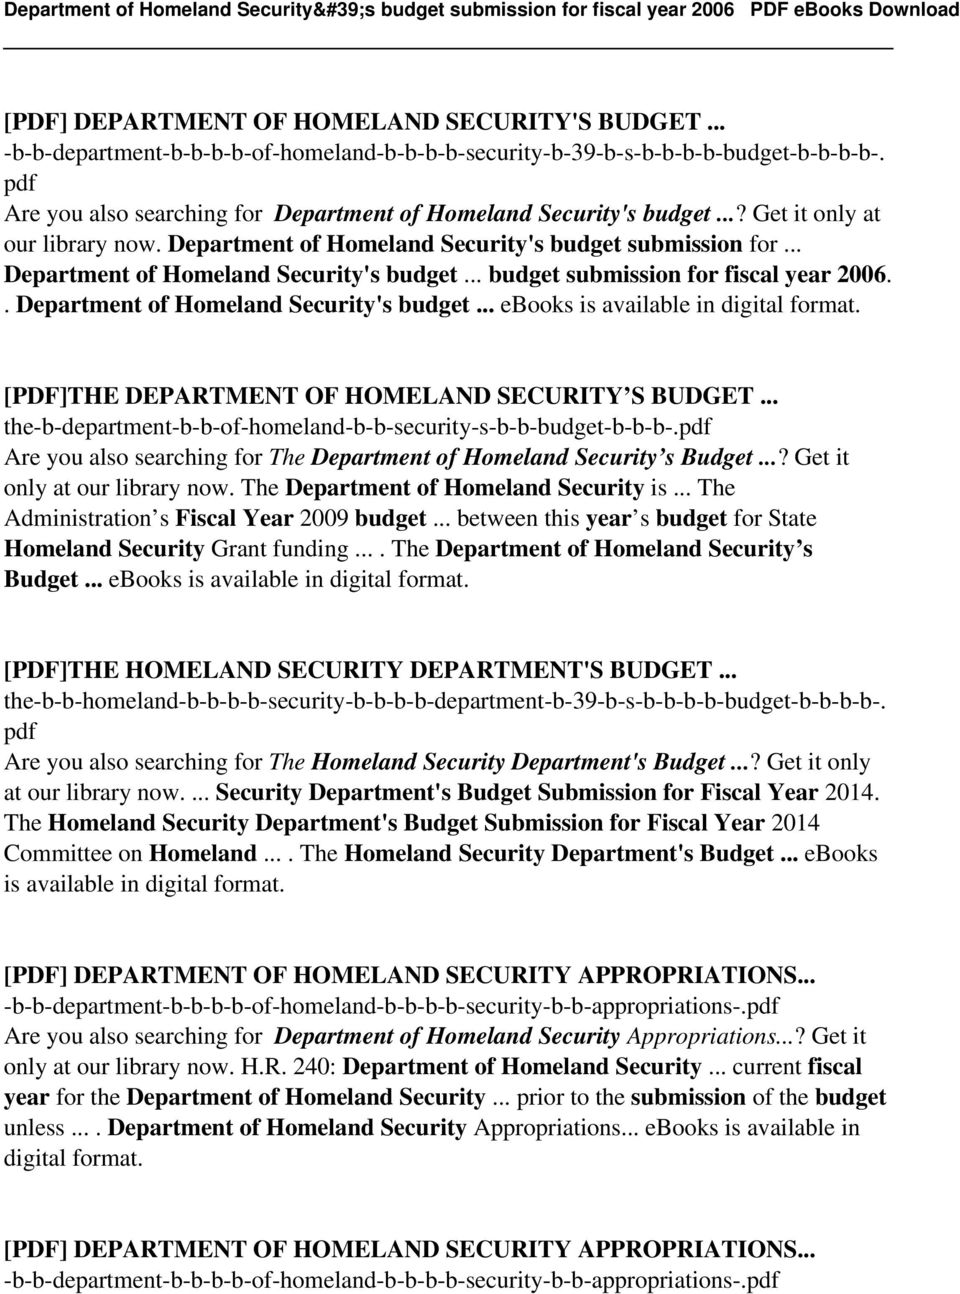 .. Department of Homeland Security's budget... budget submission for fiscal year 2006.. Department of Homeland Security's budget... ebooks is available in digital format.